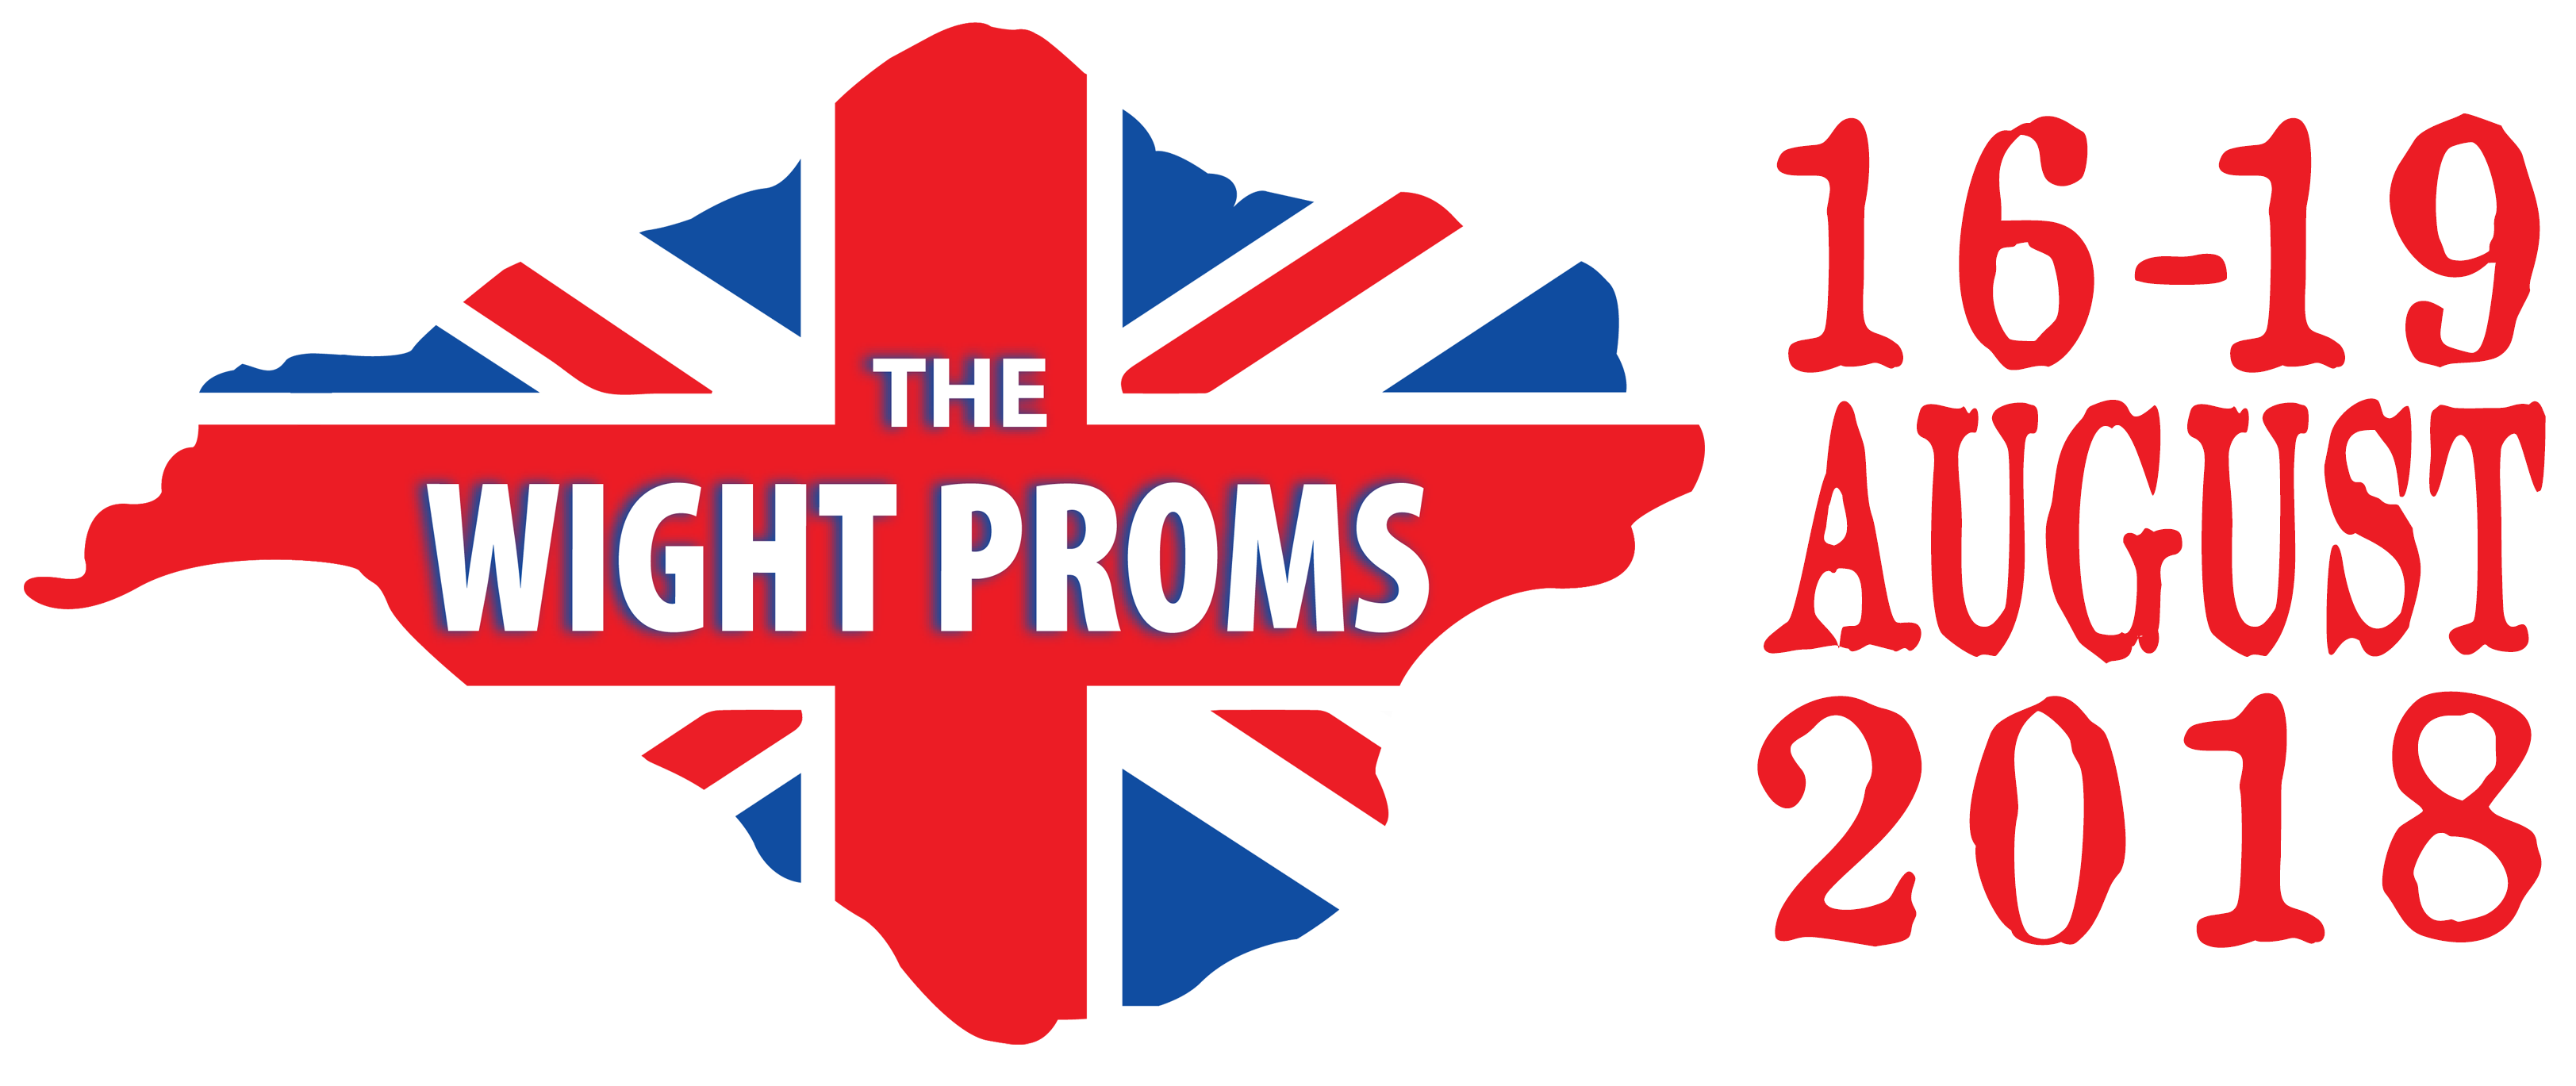 Tickets for Wight Proms -Musical Theatre Workshop (Ages 12-18) in Cowes from Ticketbooth Europe